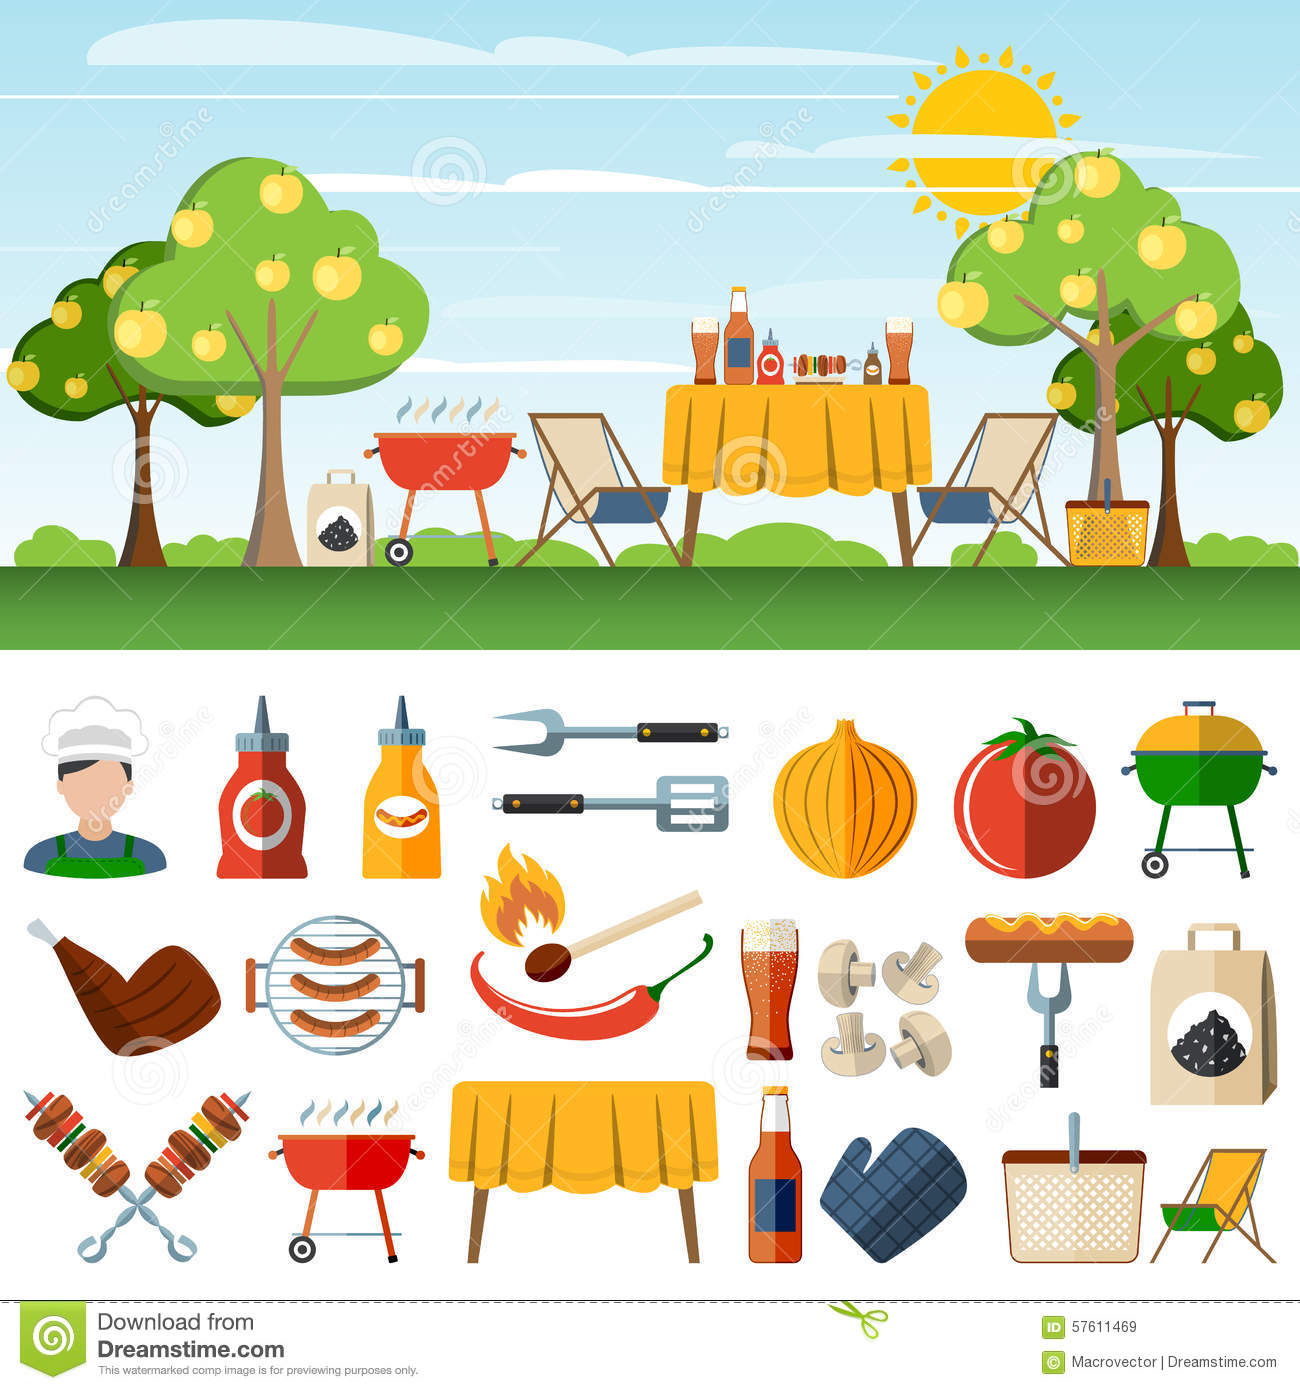 Barbecue Picnic Icons Composition Banners Stock Vector - Image ...